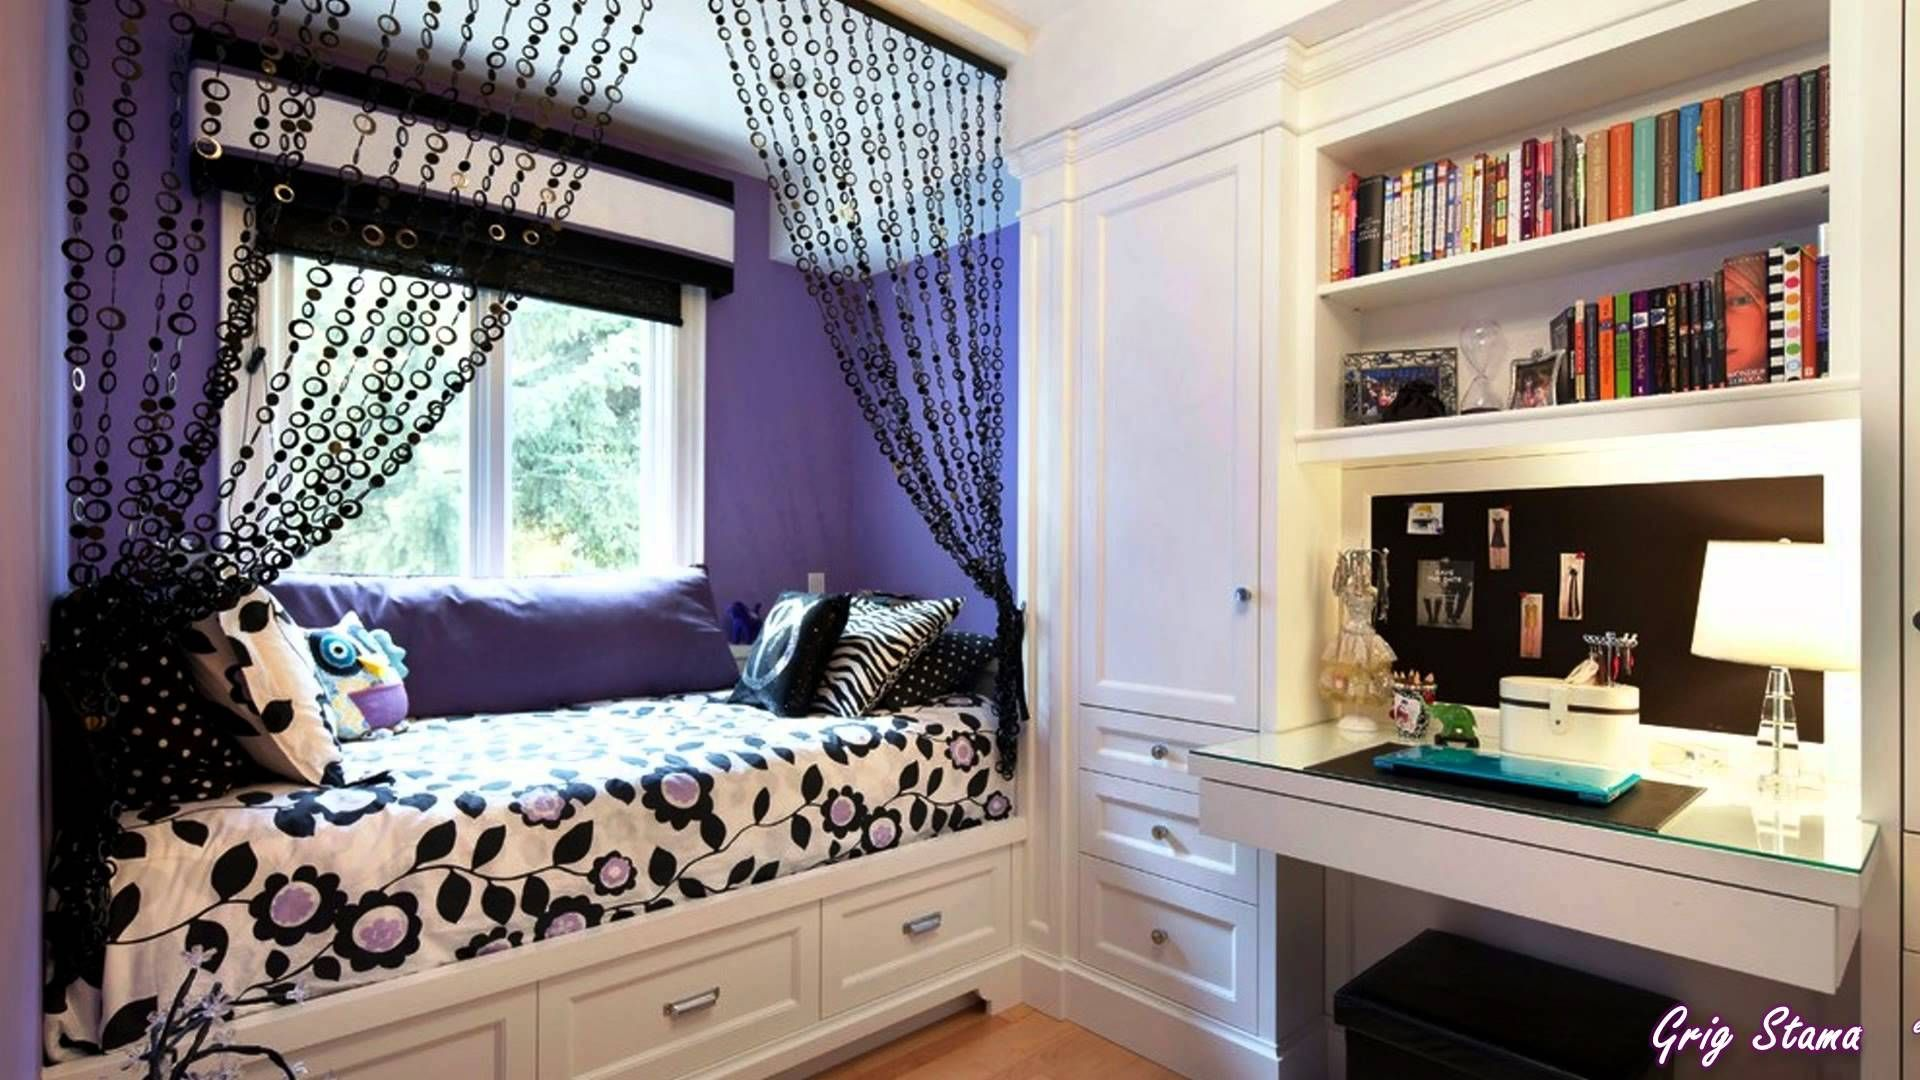 Bedroom ideas for teenage girls 2016 - Bedroom Ideas For Teenage Girls Tumblr Simple Cosmoplast Biz